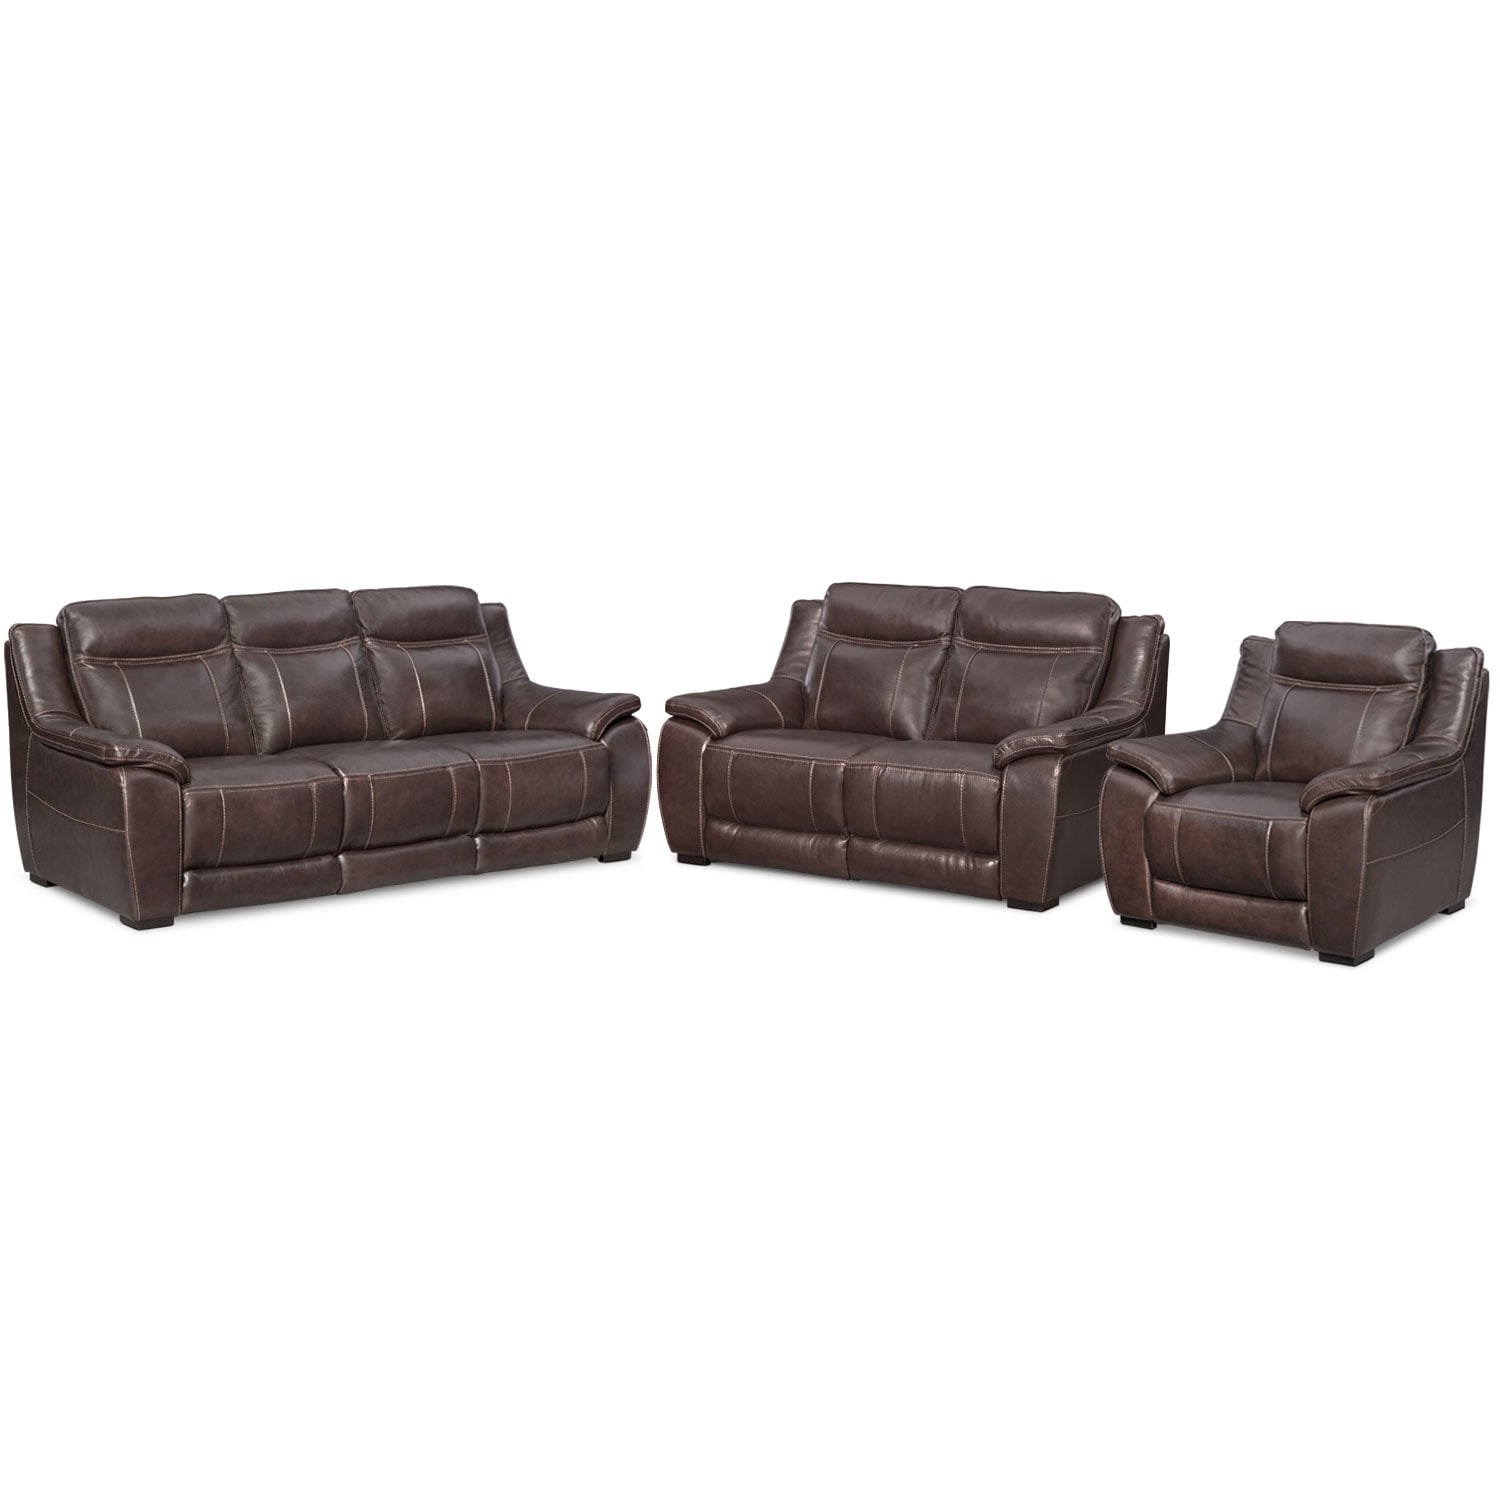 Living Room Furniture - Lido Brown 3 Pc. Living Room